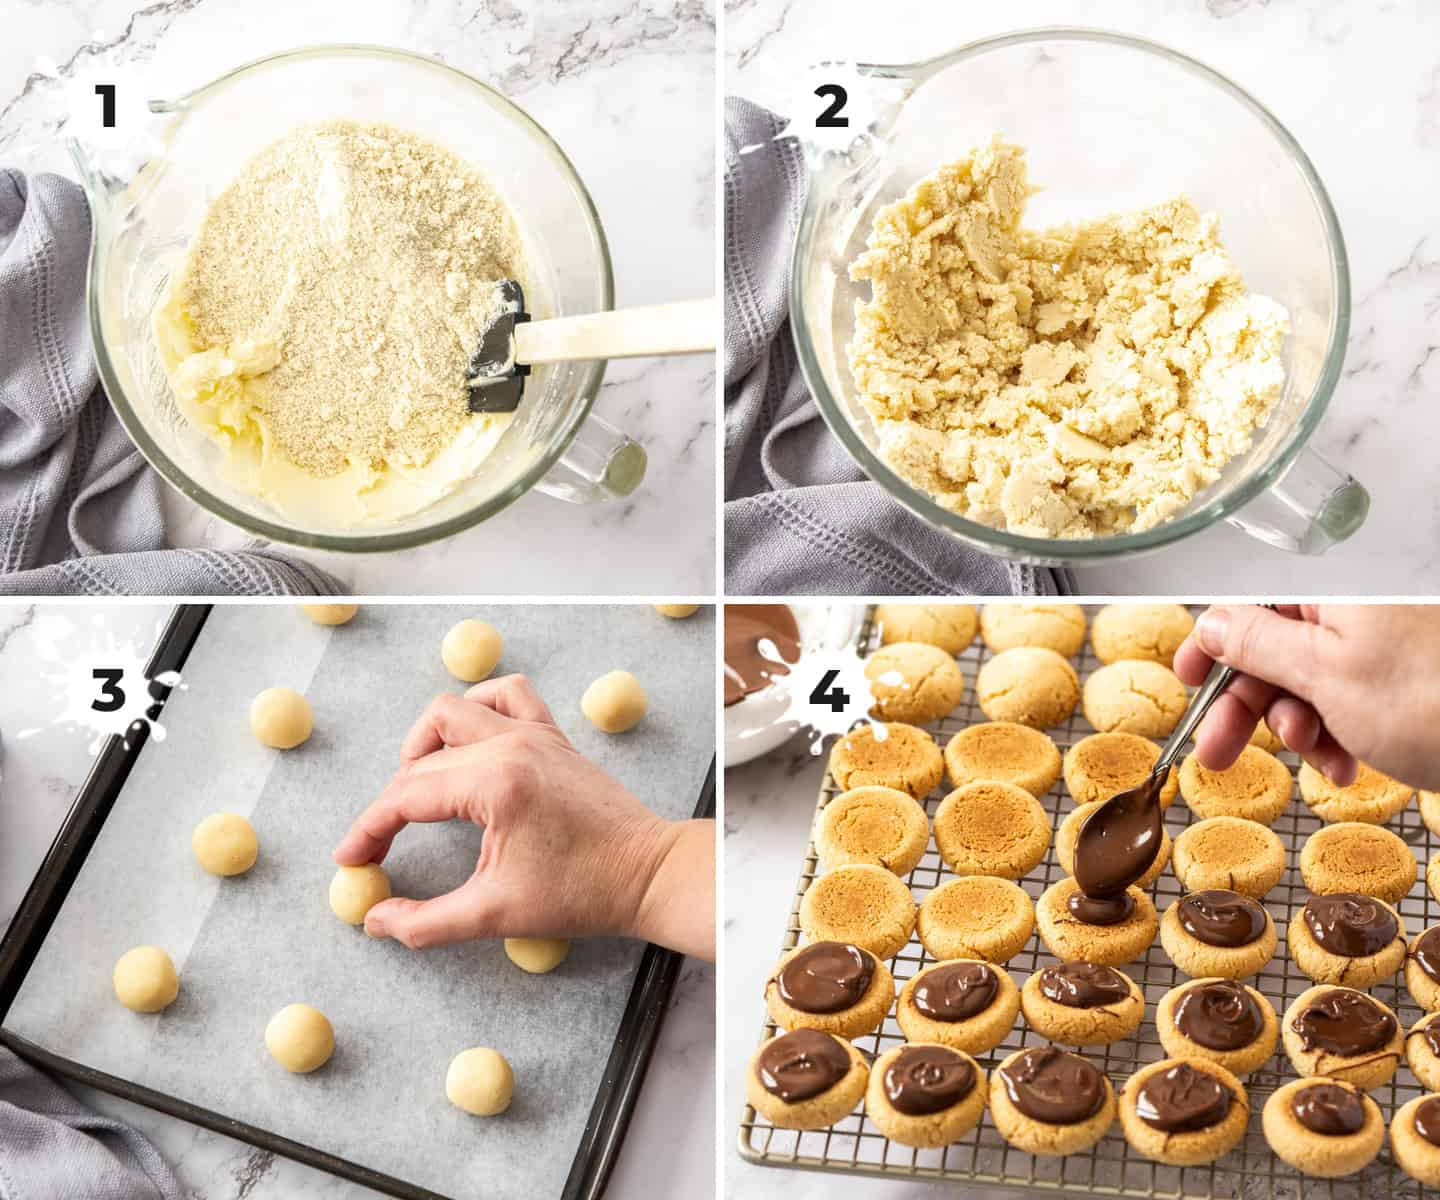 Images showing how to make the dough and how to fill baci di dama.